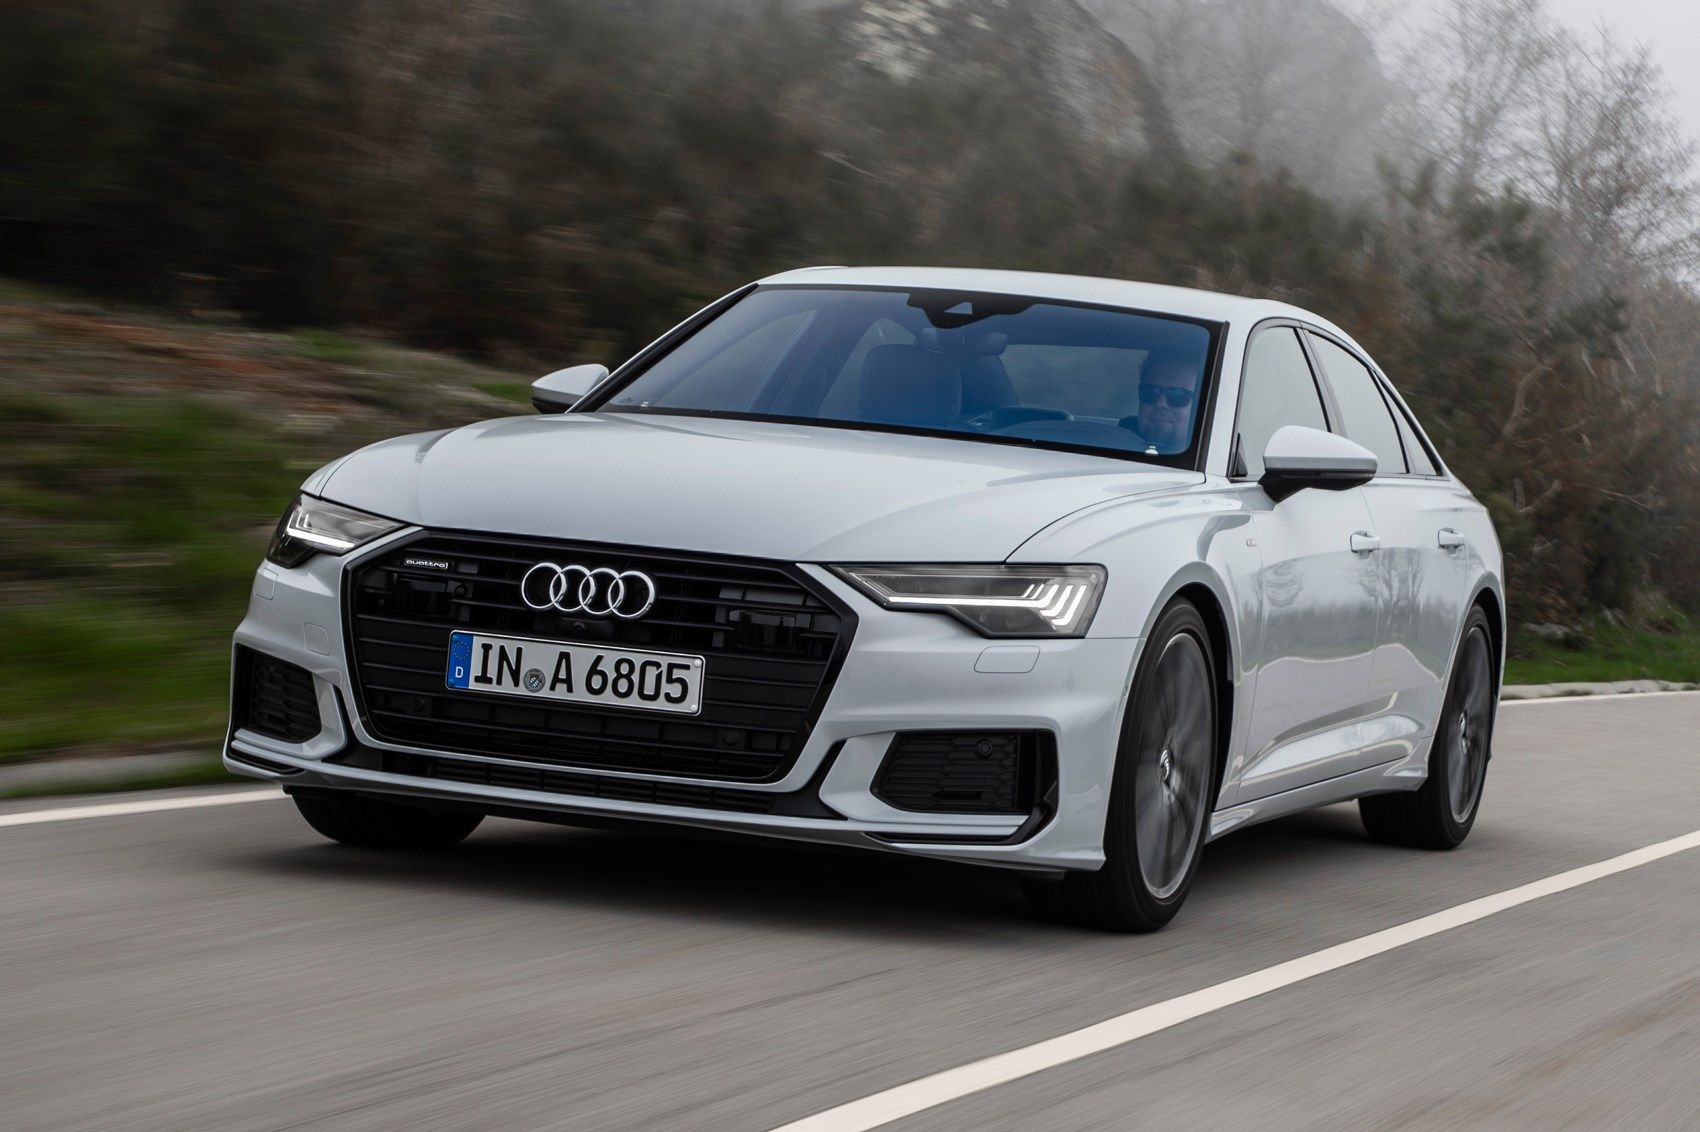 Audi A6 Saloon Review We Drive New Exec In Uk With Images Audi Luxury Hybrid Cars Audi A6